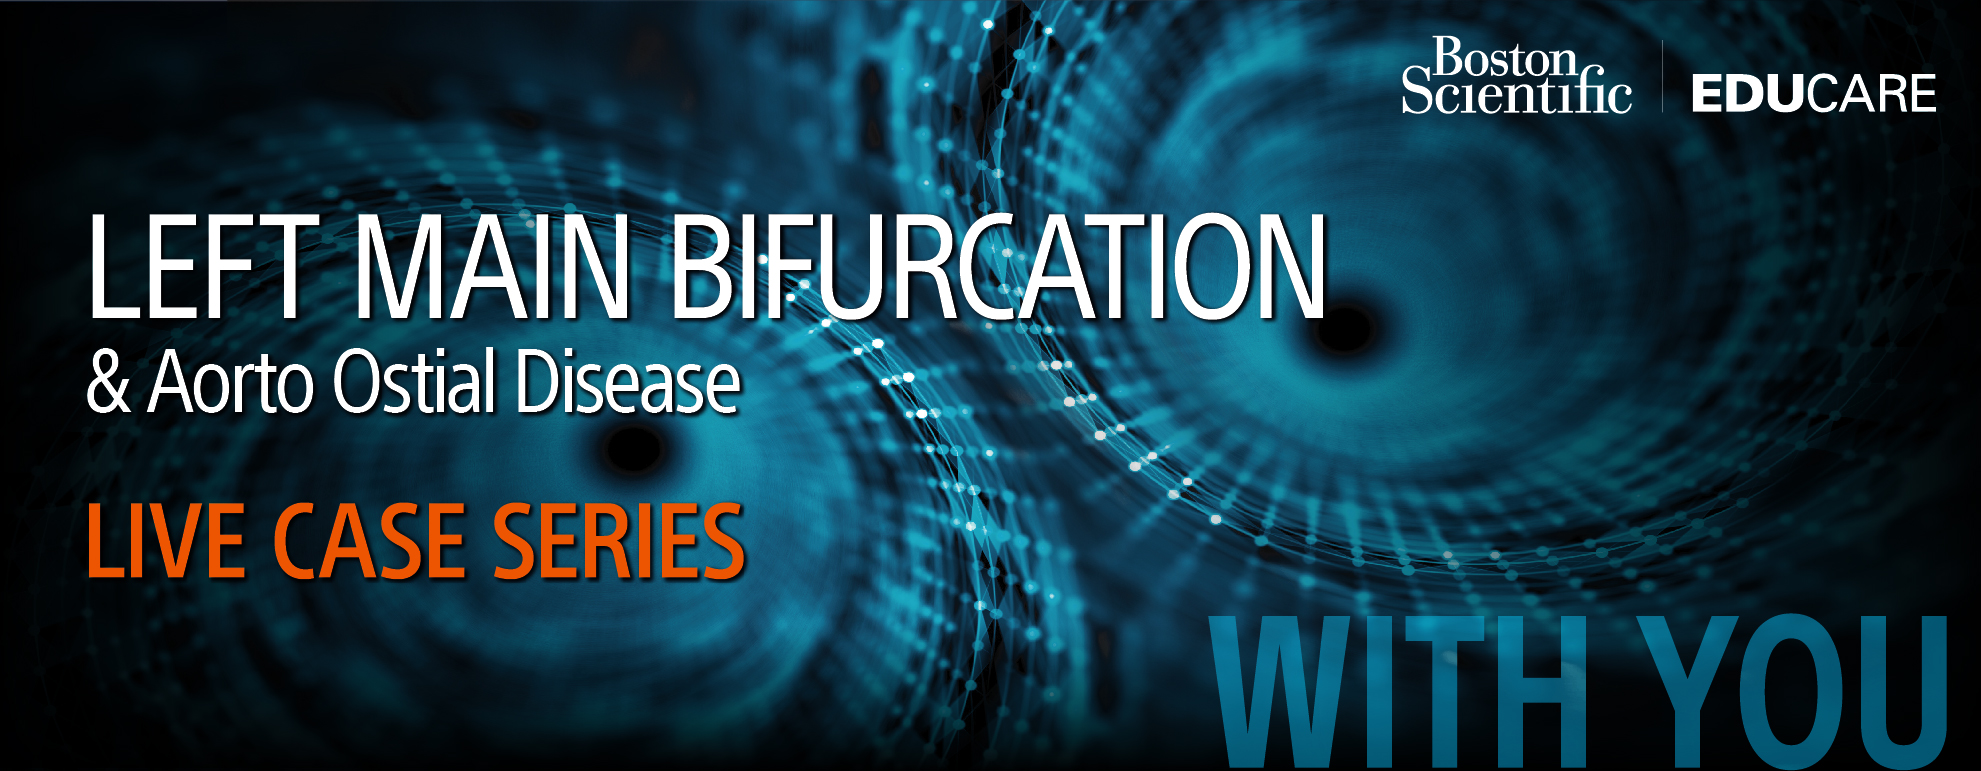 Left Main Bifurcation